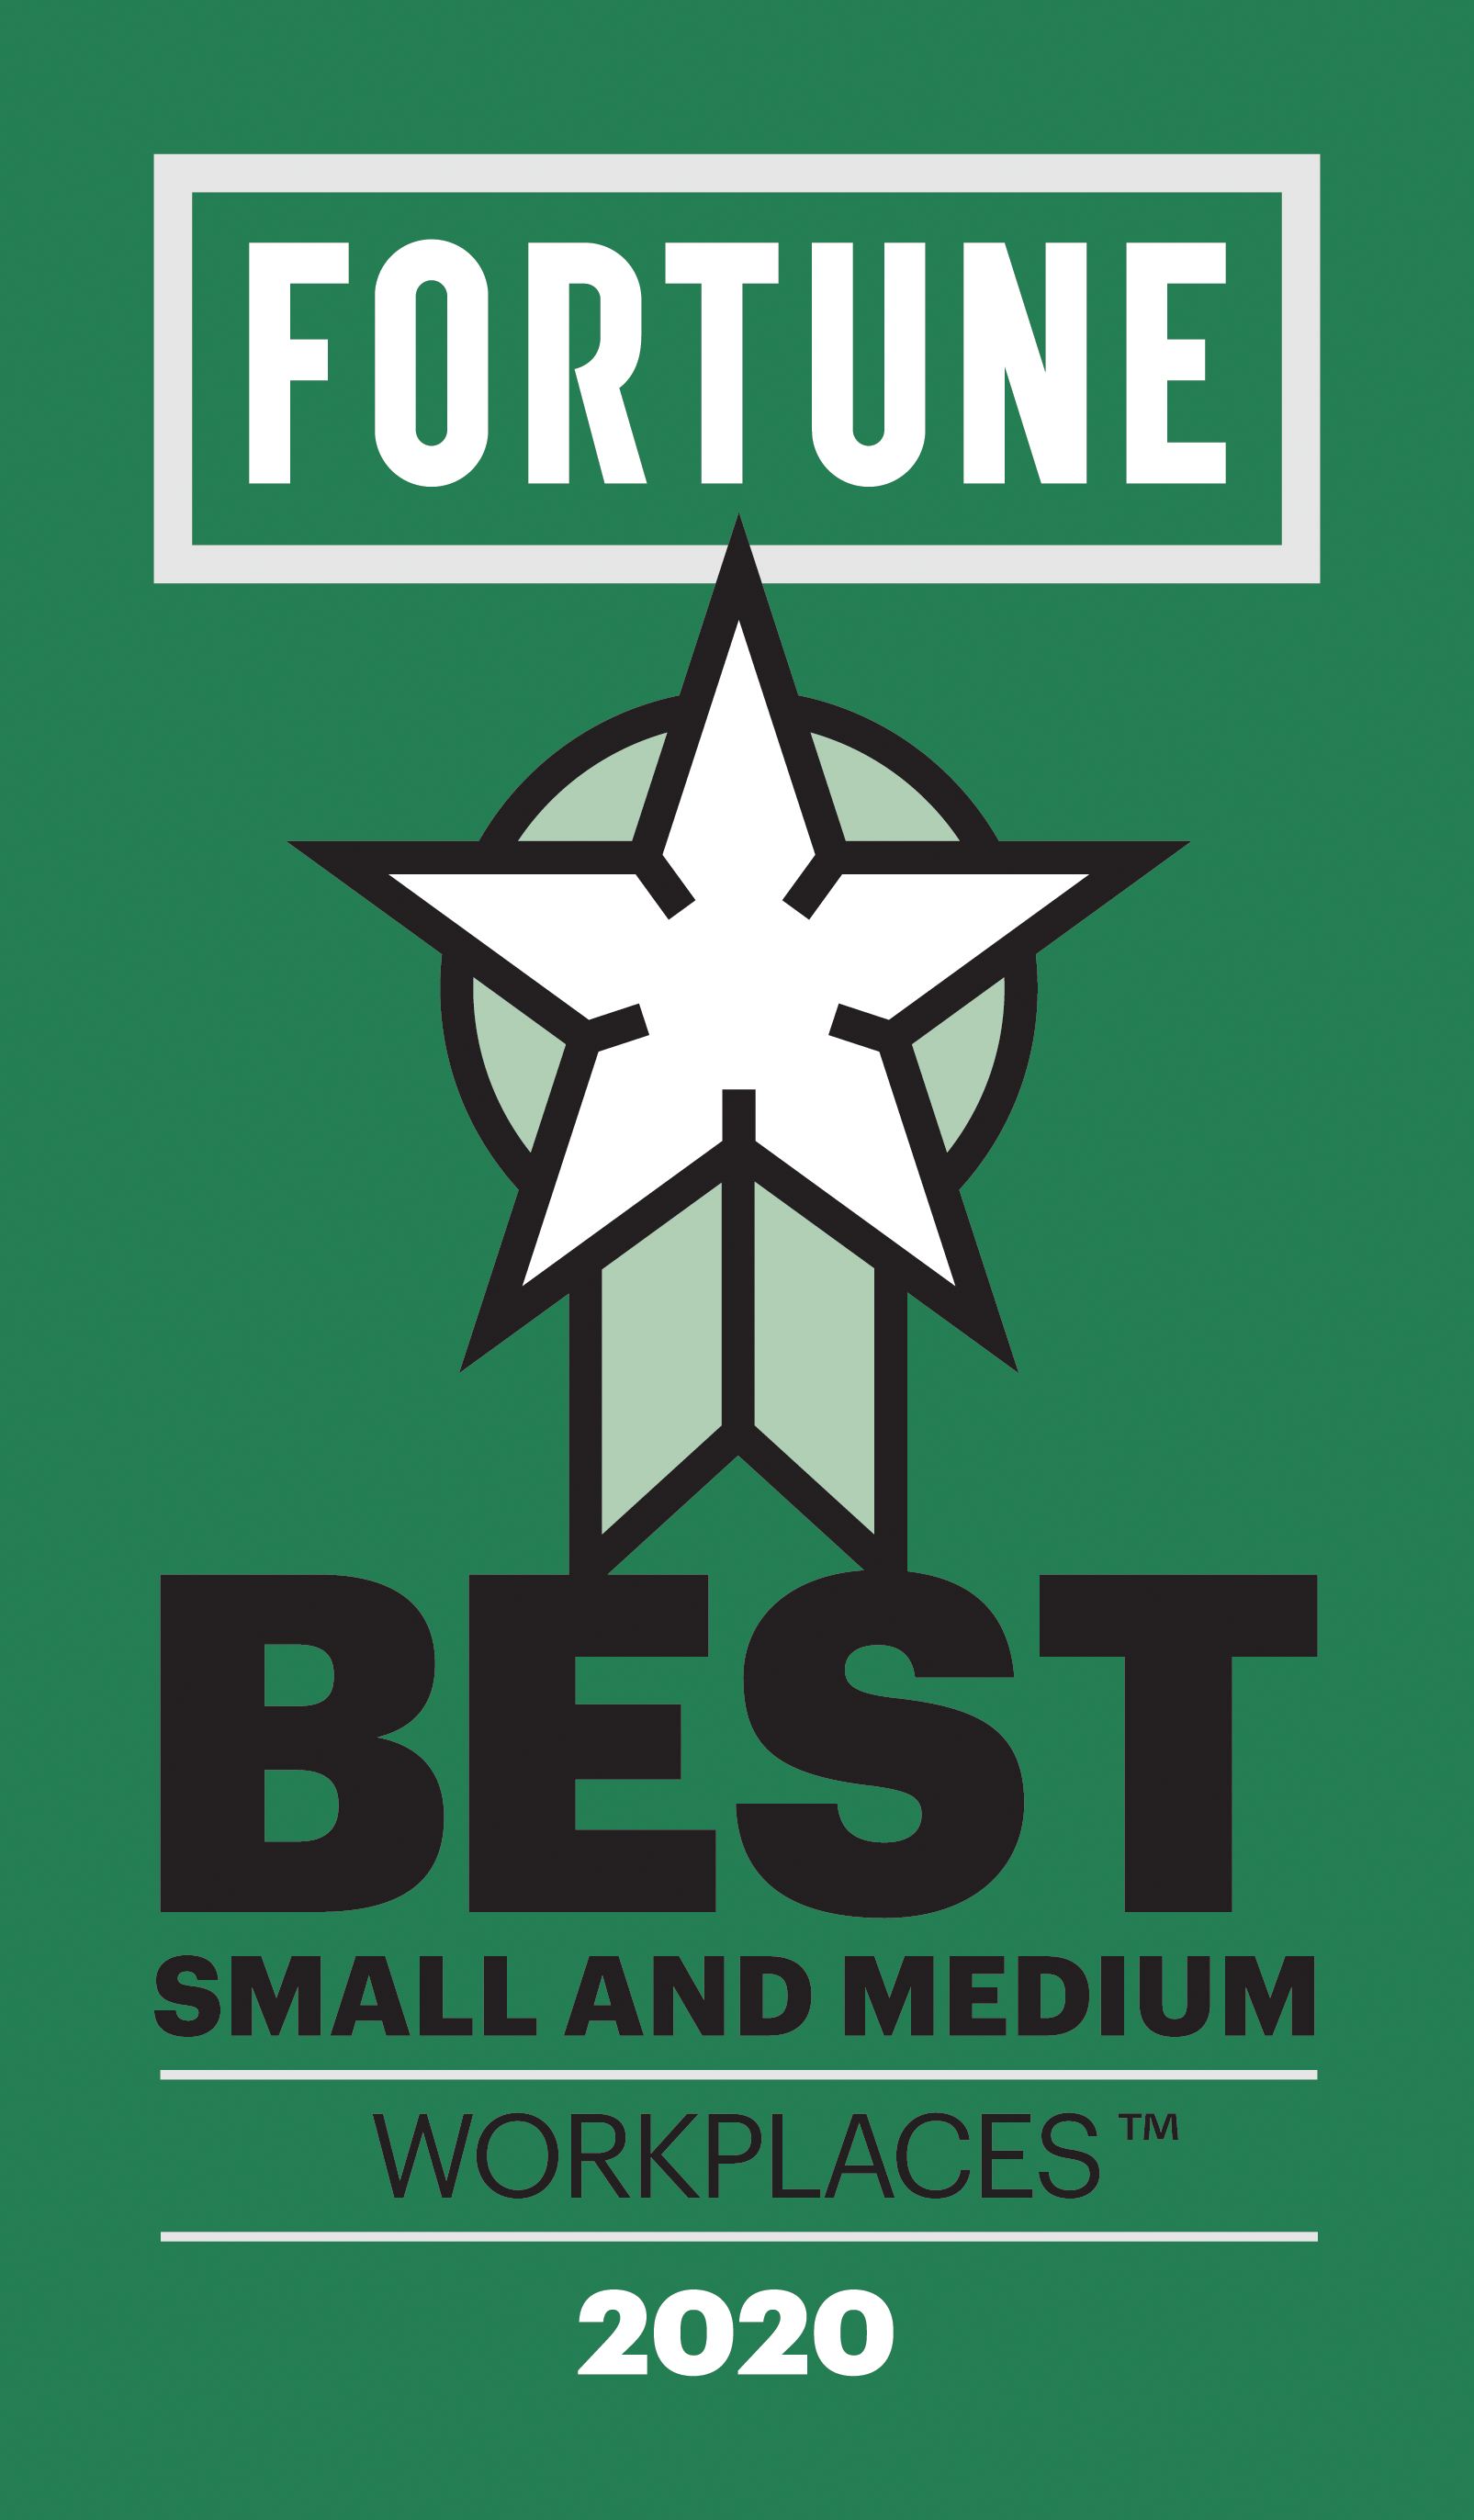 UPDATED - Fortune Best Small Medium Workplaces Logo 2020